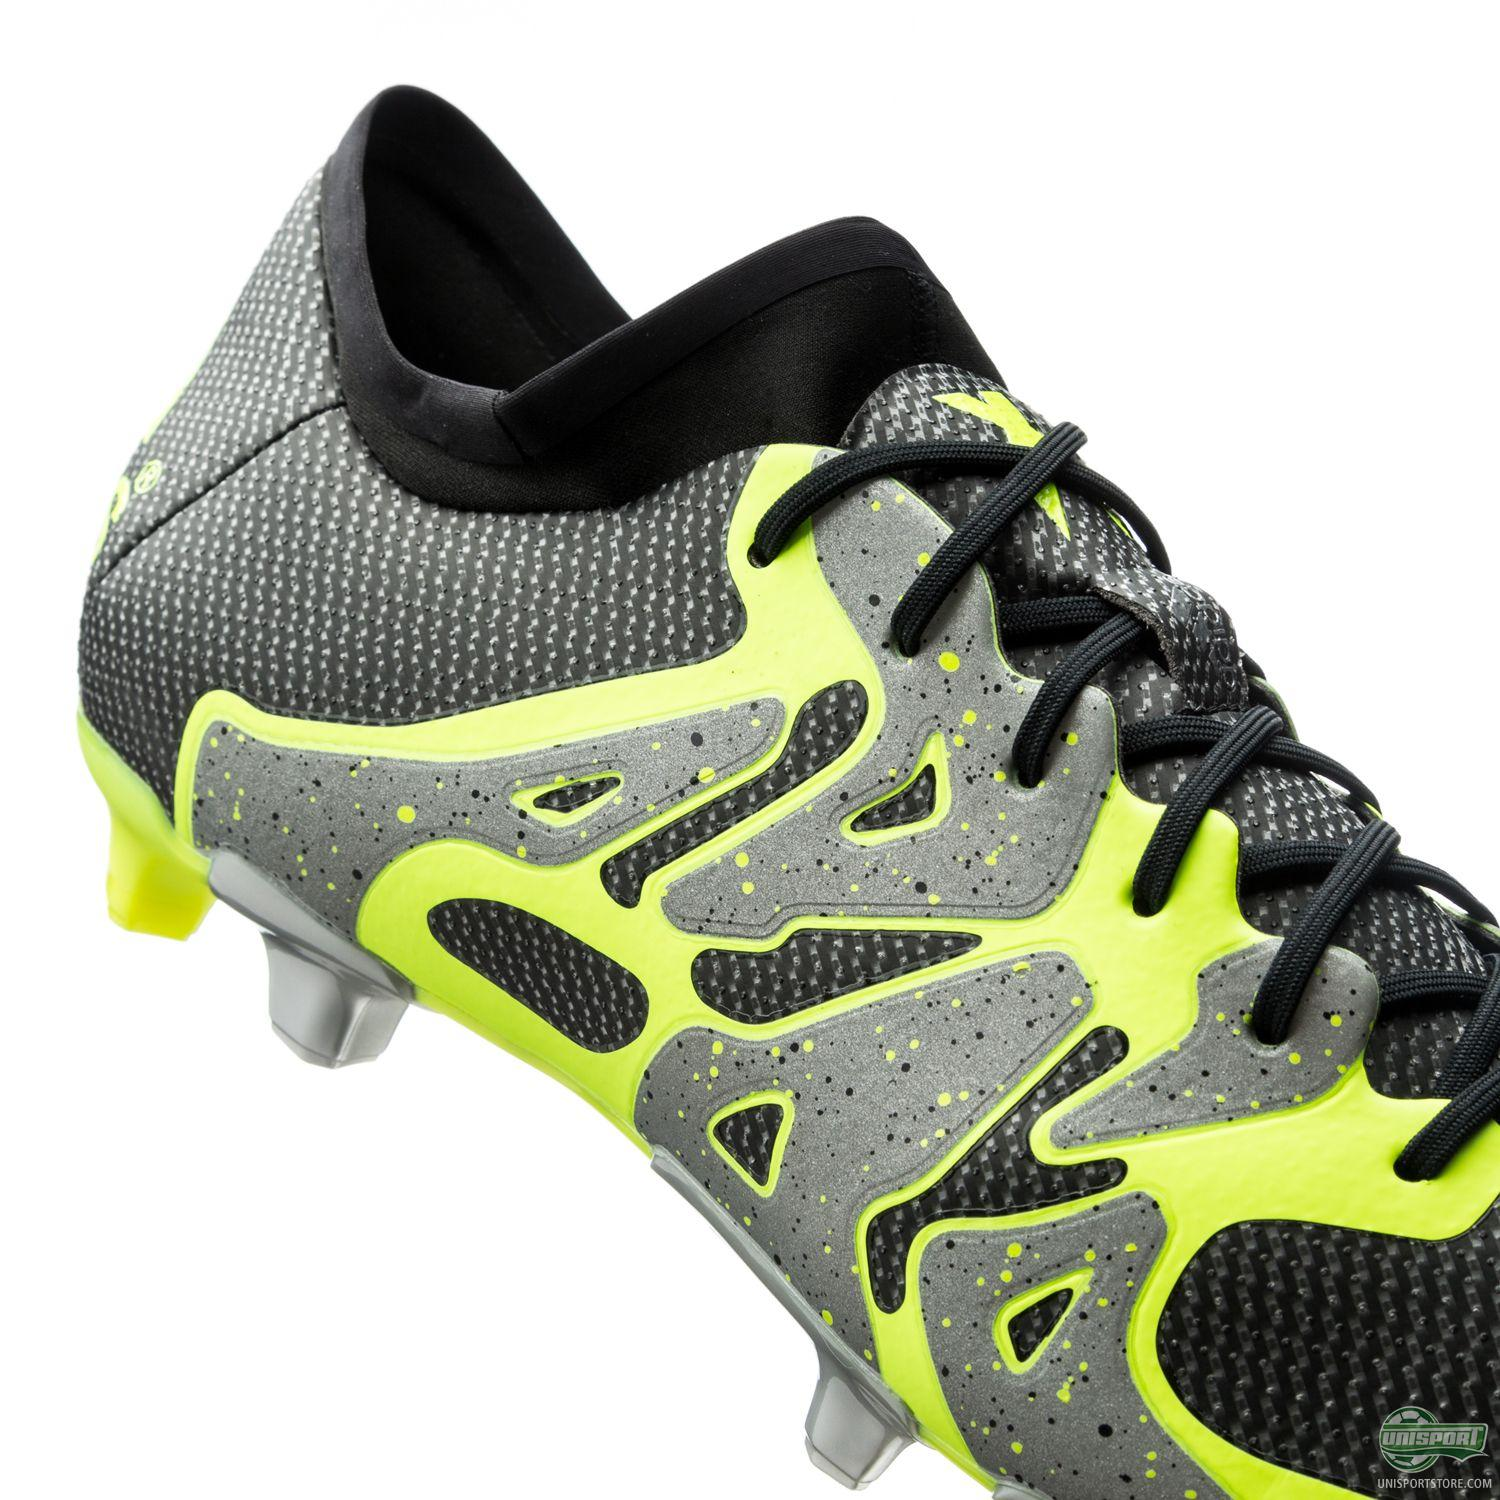 If you asked me to rank the three X boots we have seen so far 5cea6aea8138